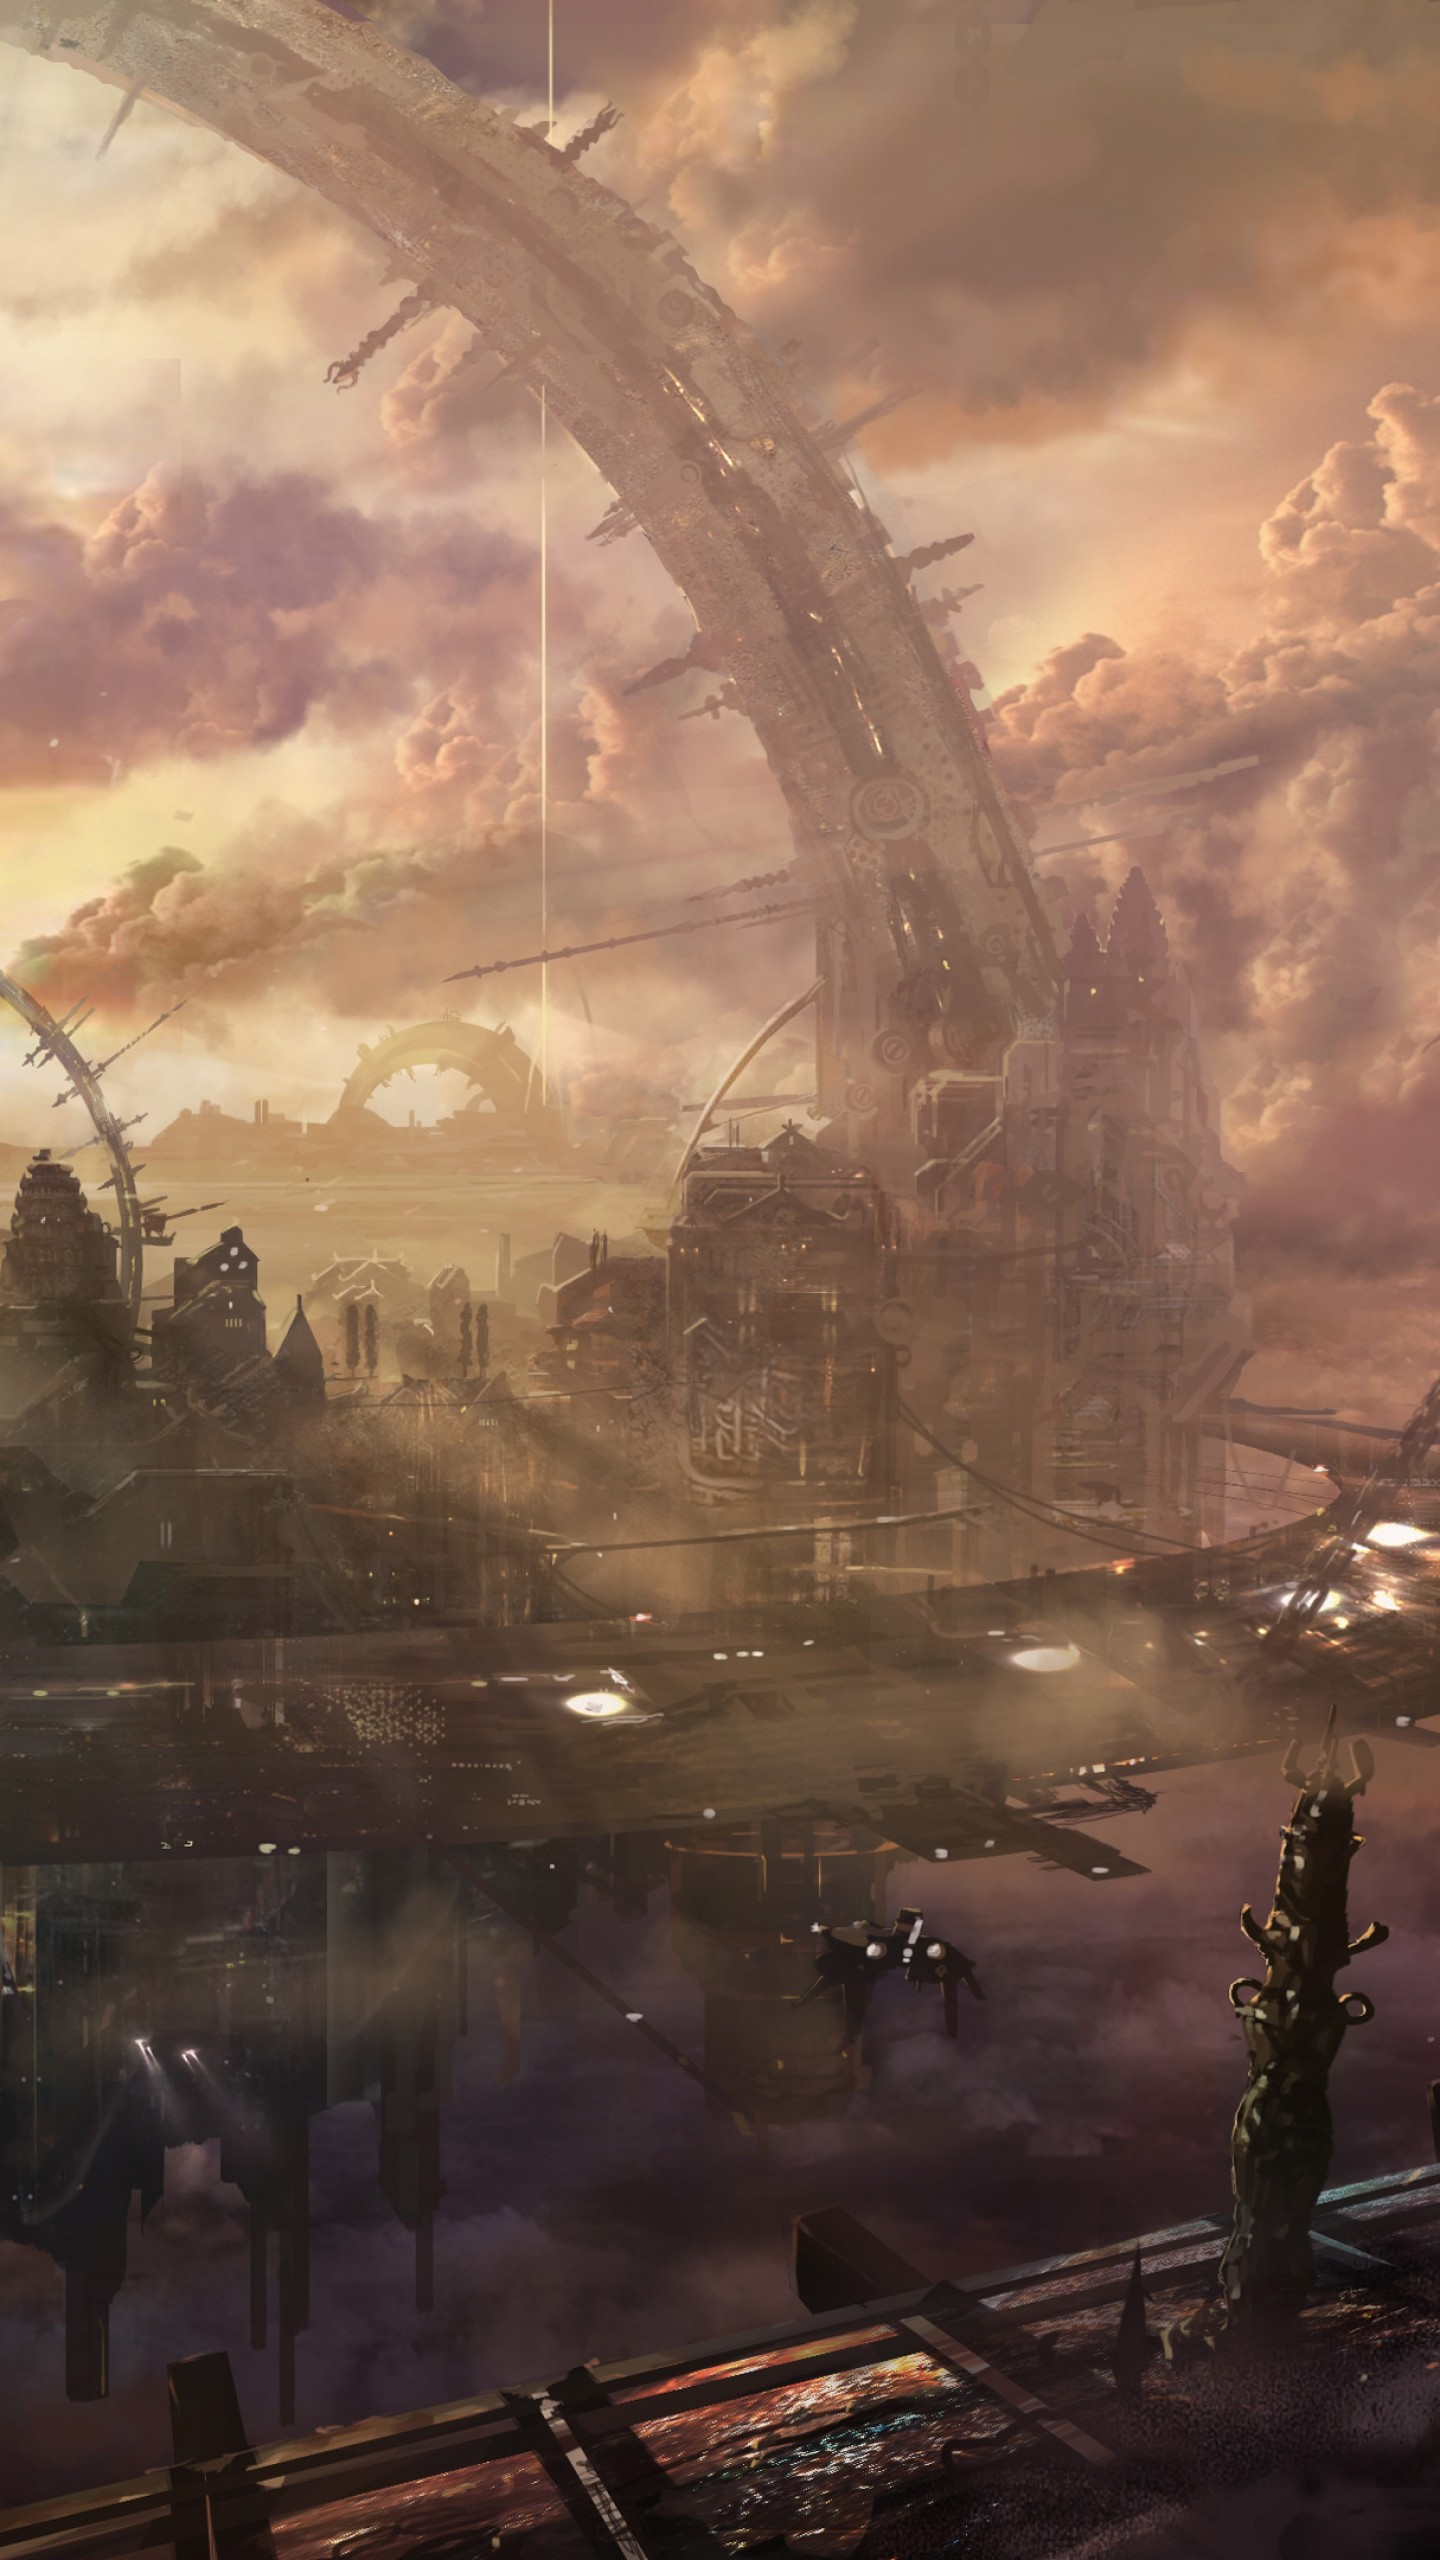 All Indian Girls Wallpaper Wallpaper Heaven City Arch Building Space Station